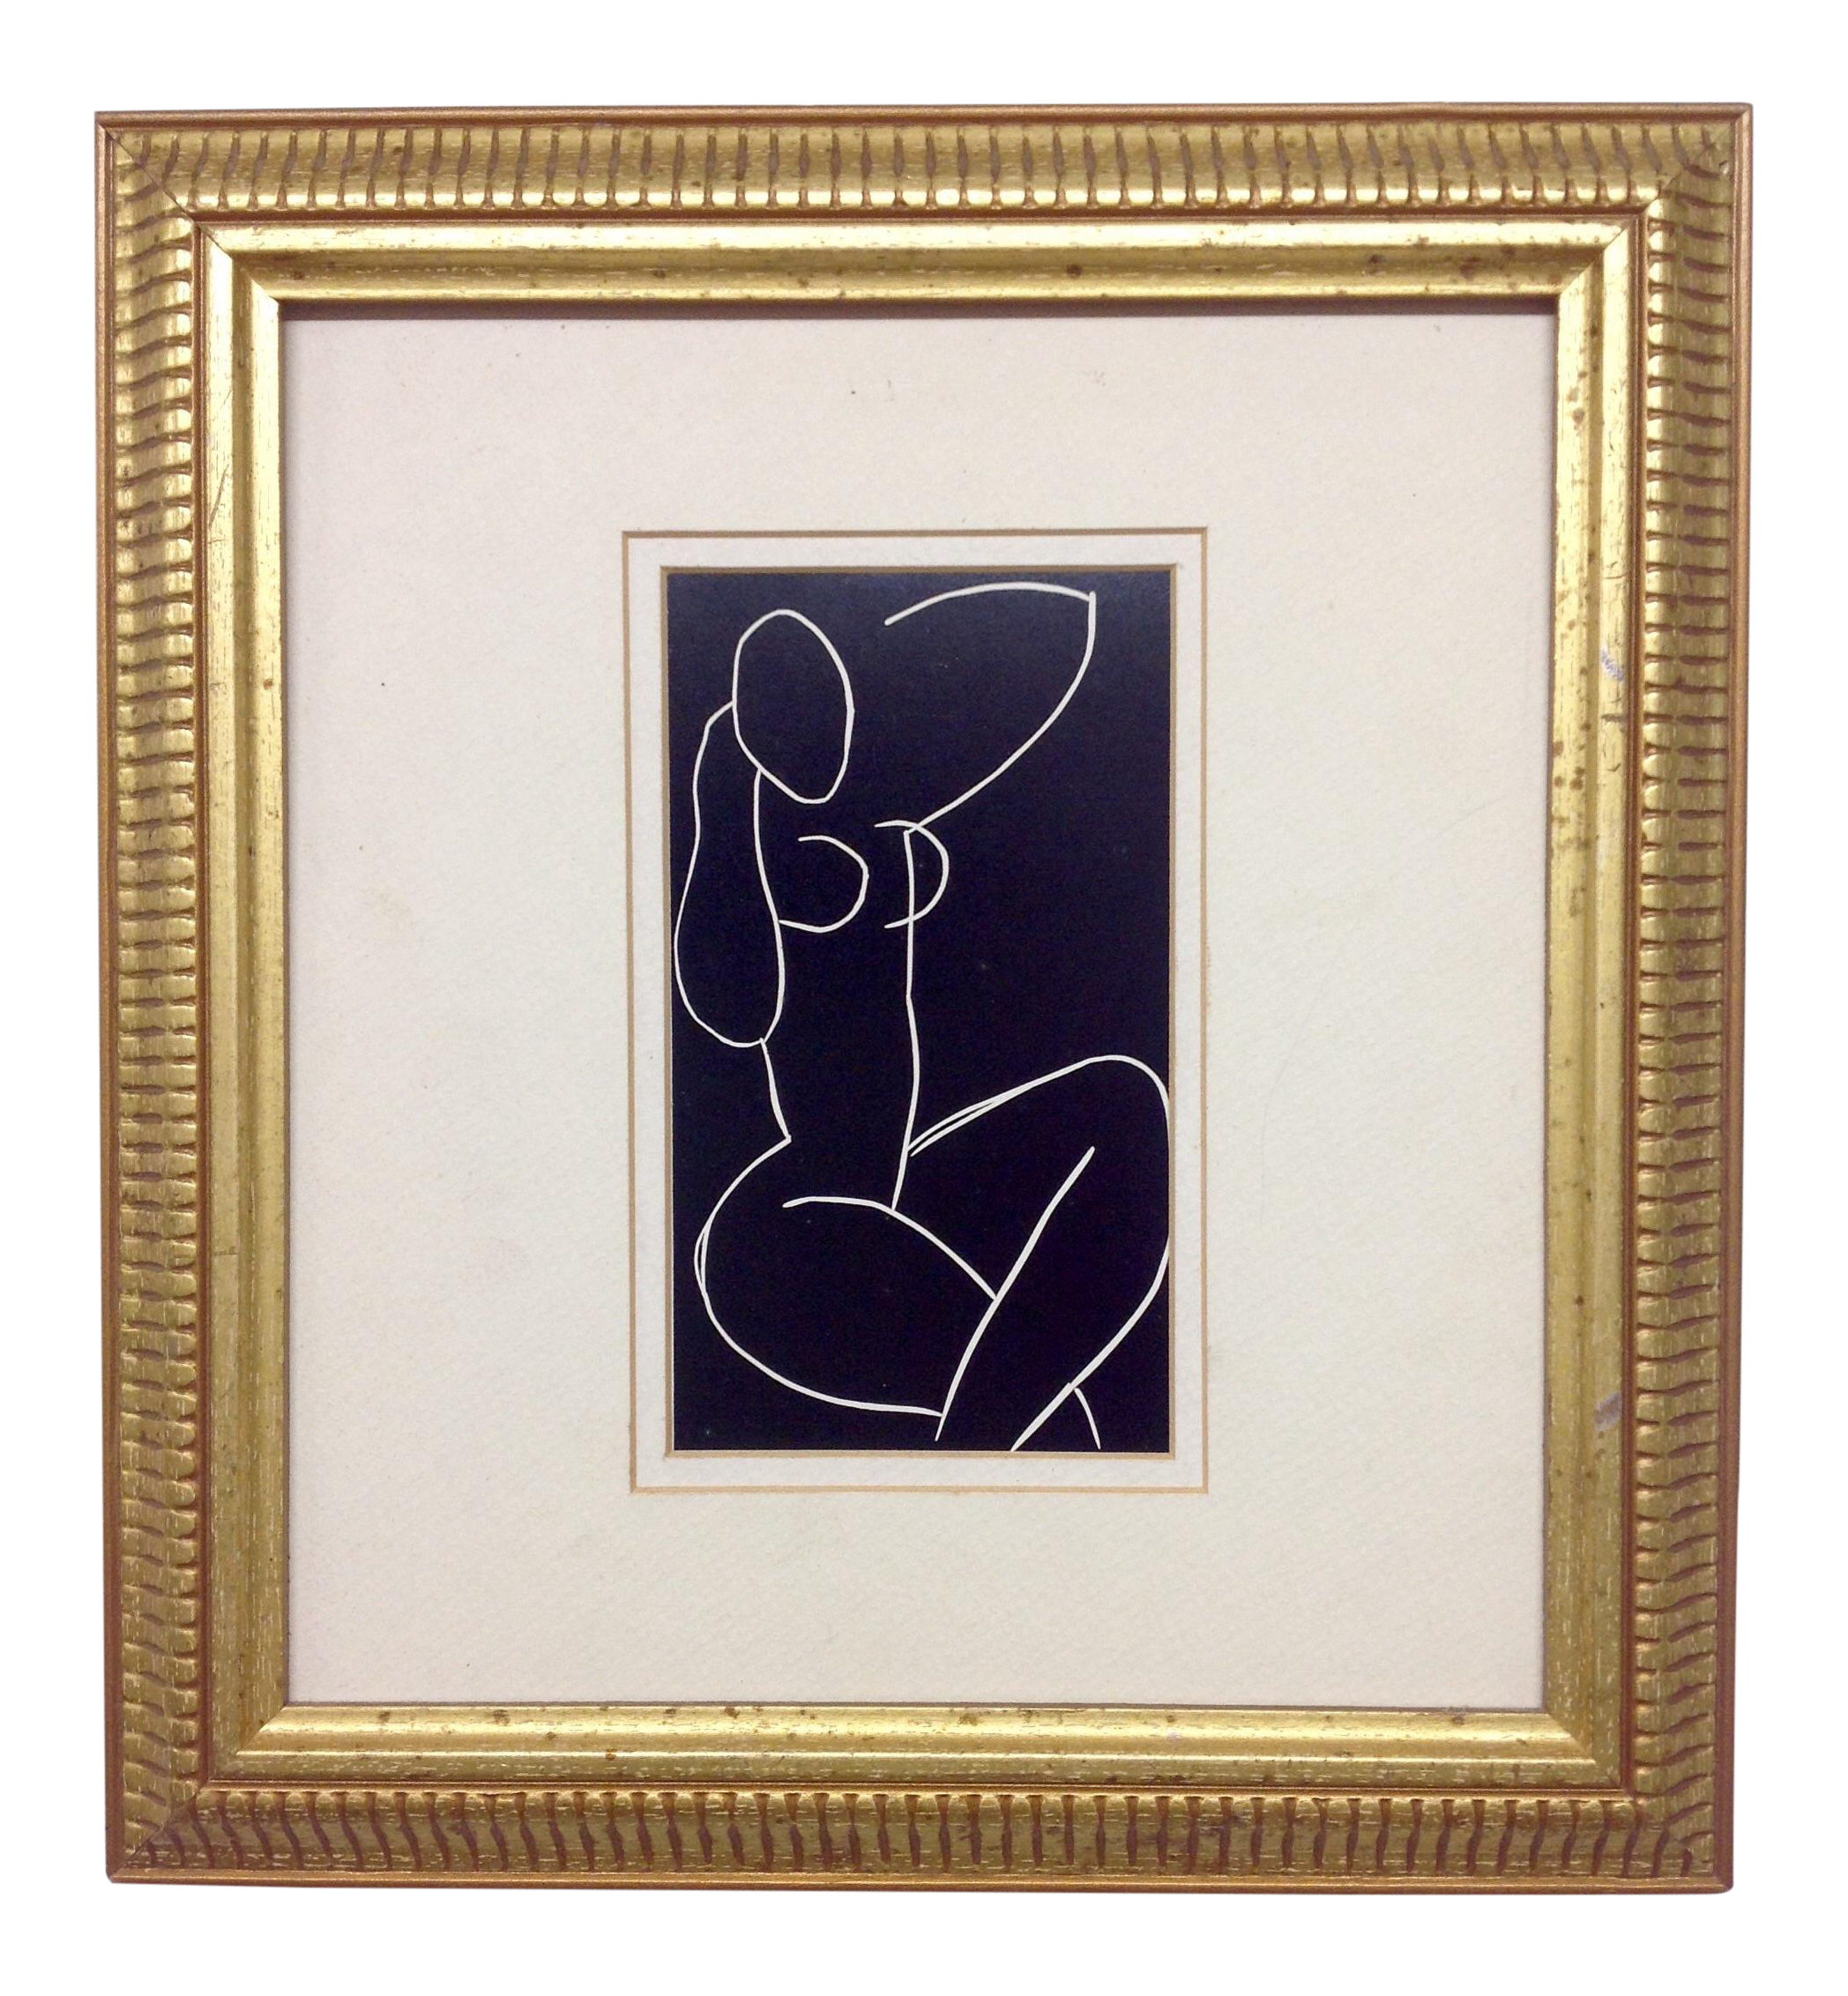 image black and white library Drawing prints matisse. White black print of